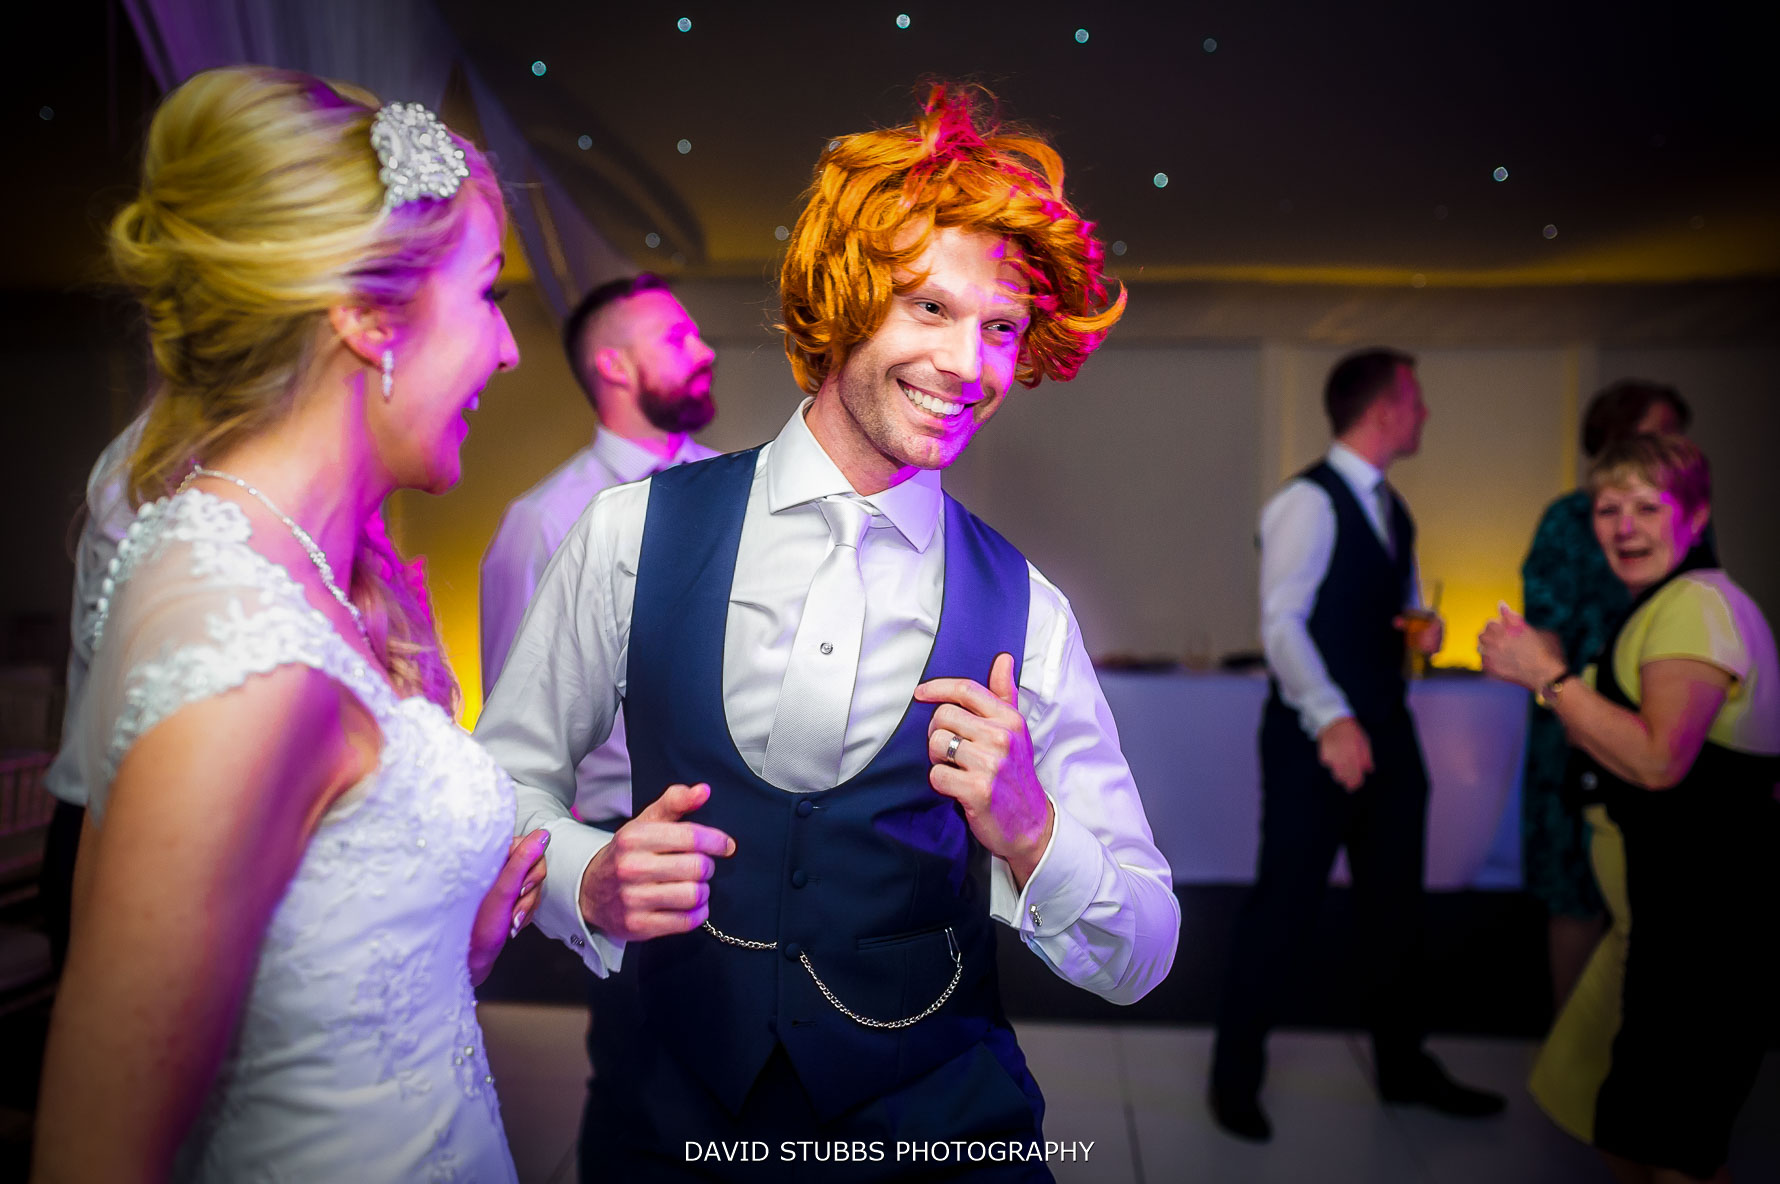 groom with a silly wig on